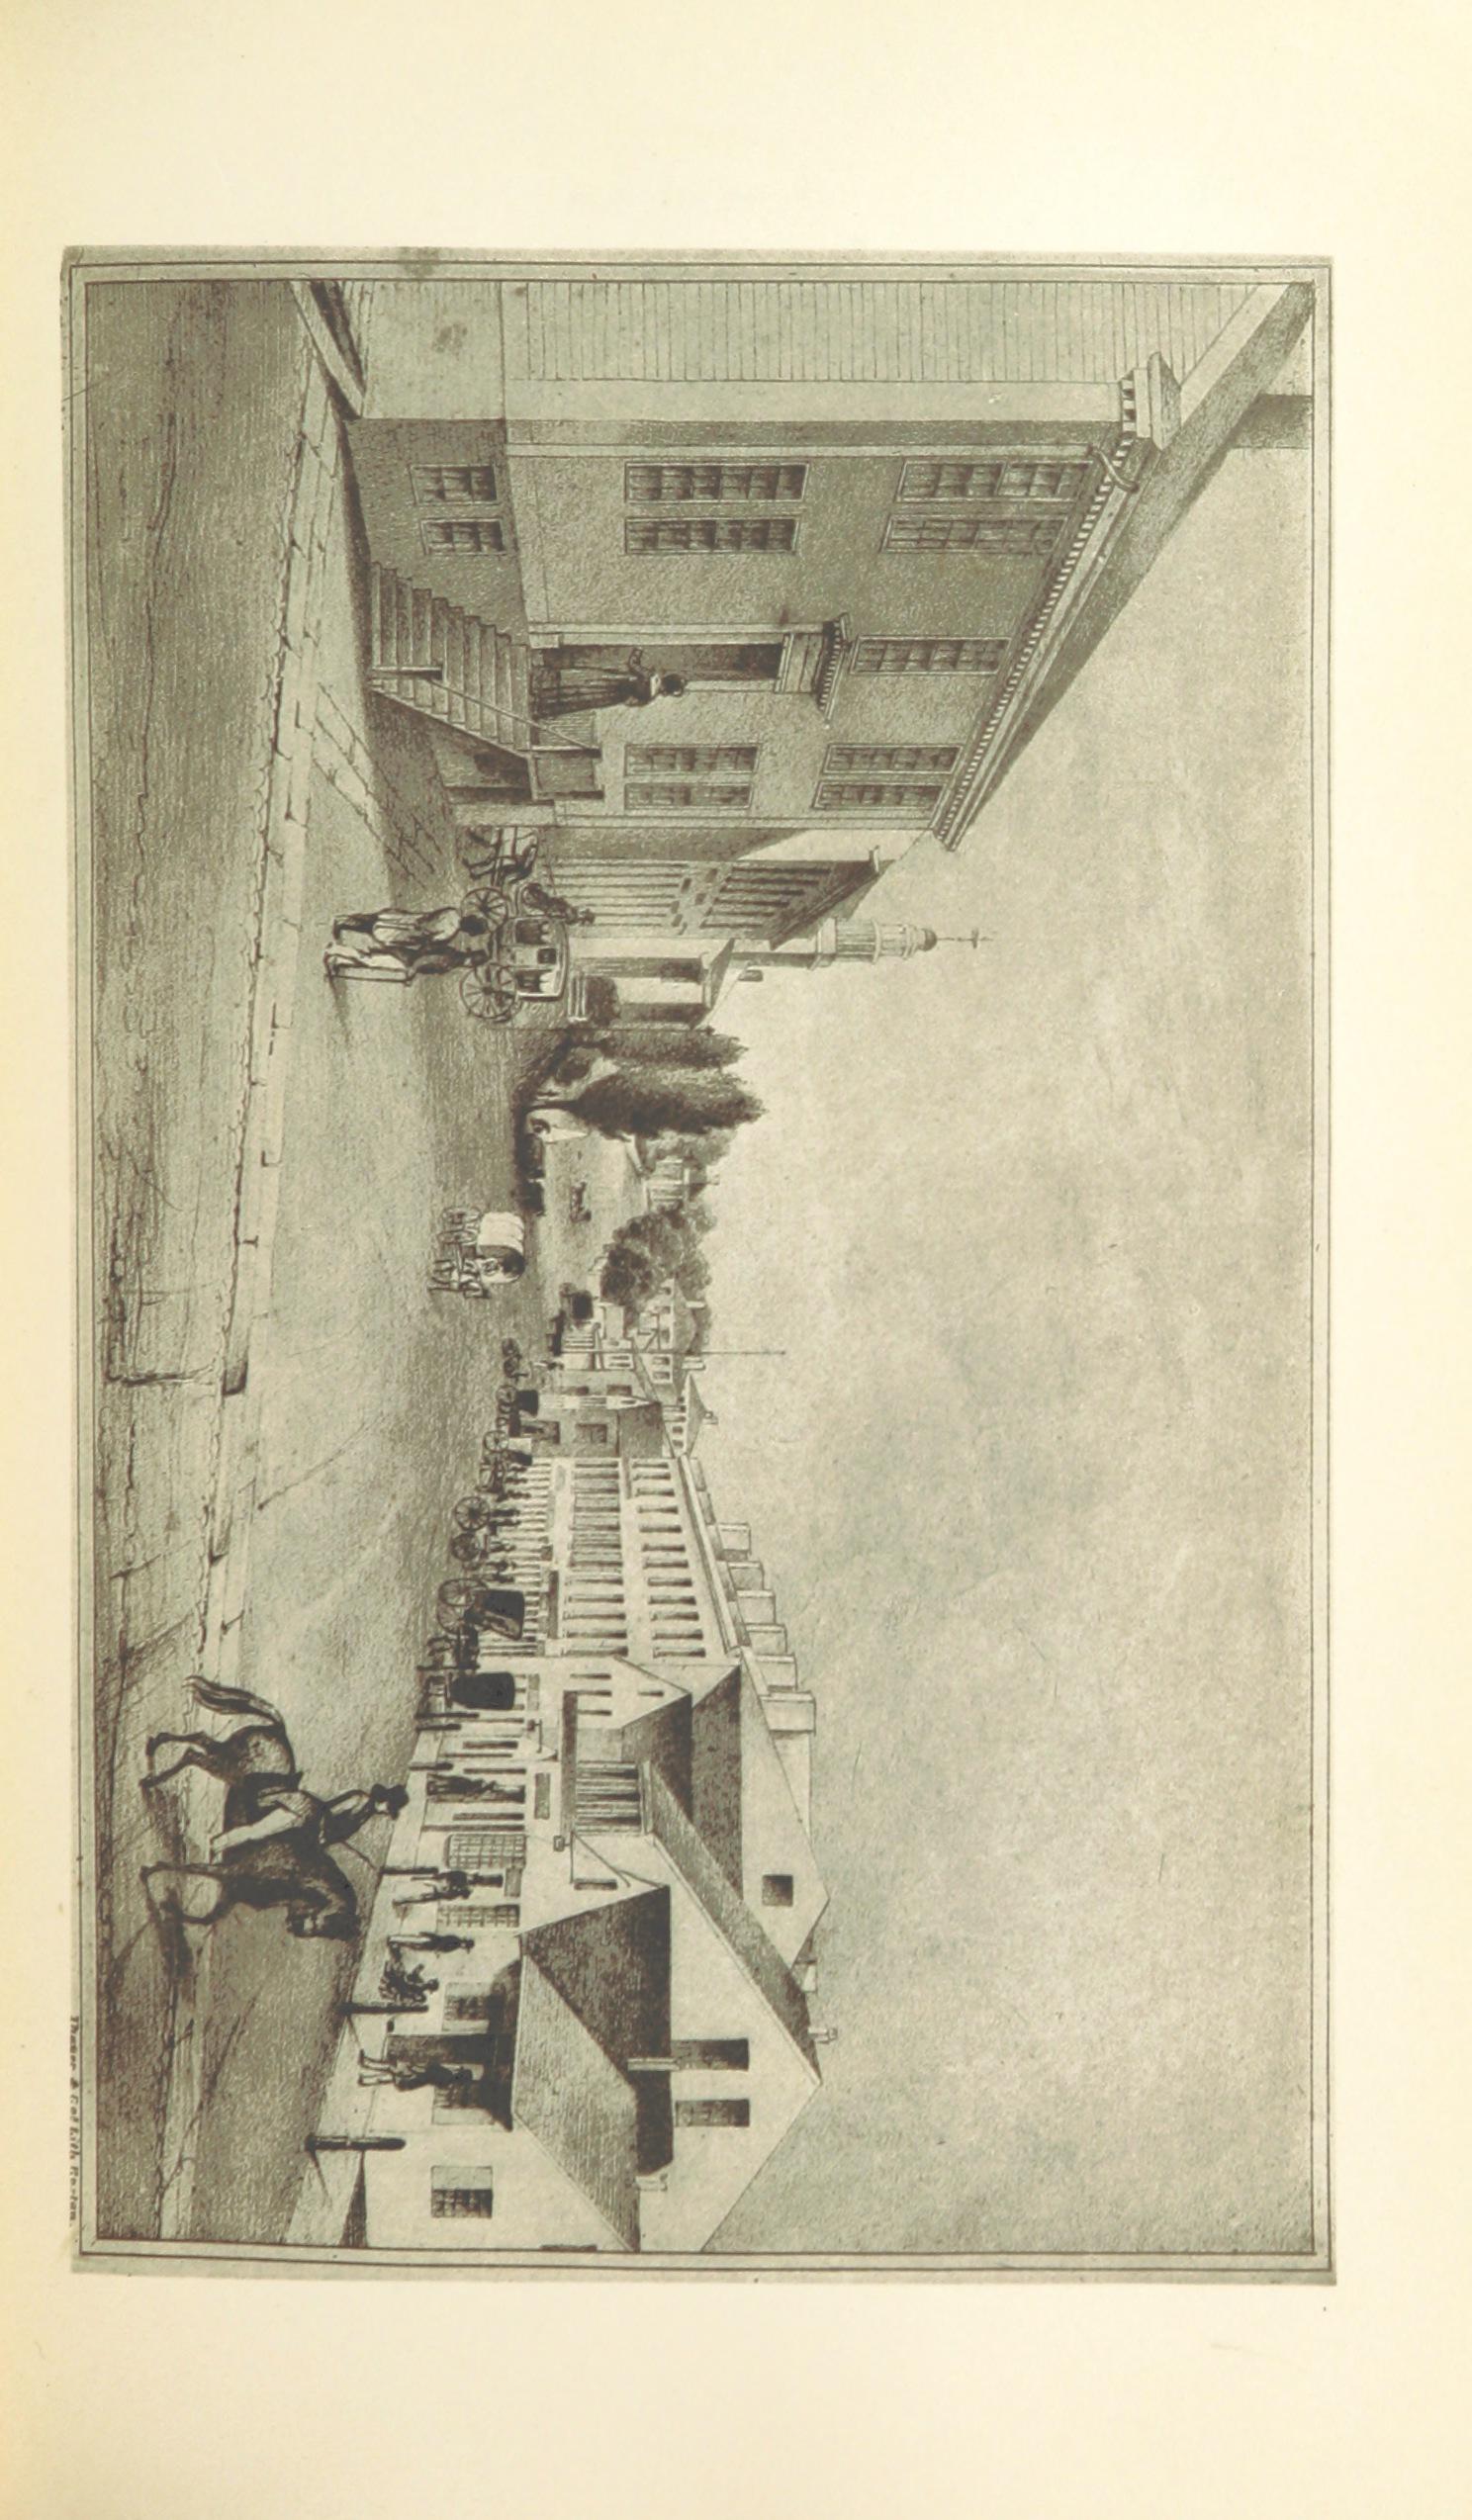 Image taken from page 245 of 'History of the City of Belfast in the State of Maine, from its first settlement in 1770 to 1875. (vol. II. 1875-1900 ... completed and edited by Alfred Johnson.)'